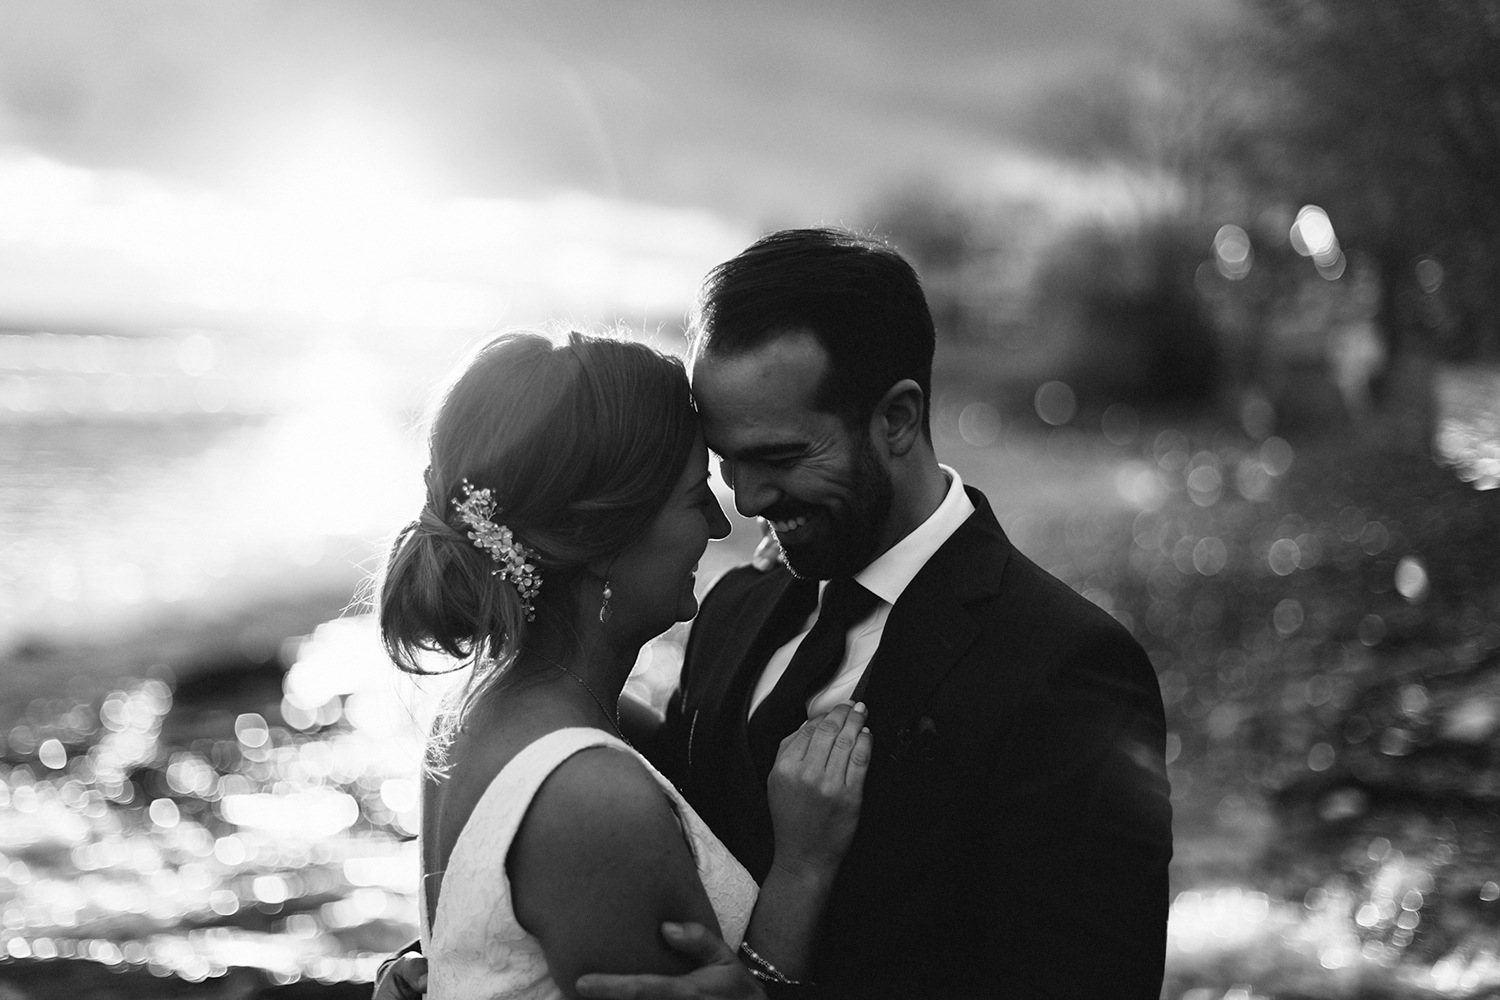 Prince-Edward-County-Wedding-Photographer-Drake-Devonshire-Elopement-Ryanne-Hollies-Photography-junebug-weddings-best-of-the-best-2018-bride-and-groom-portraits-artistic-intimate-sunset-epic-colourful-golden-hour-lake-ontario-light-bw.jpg